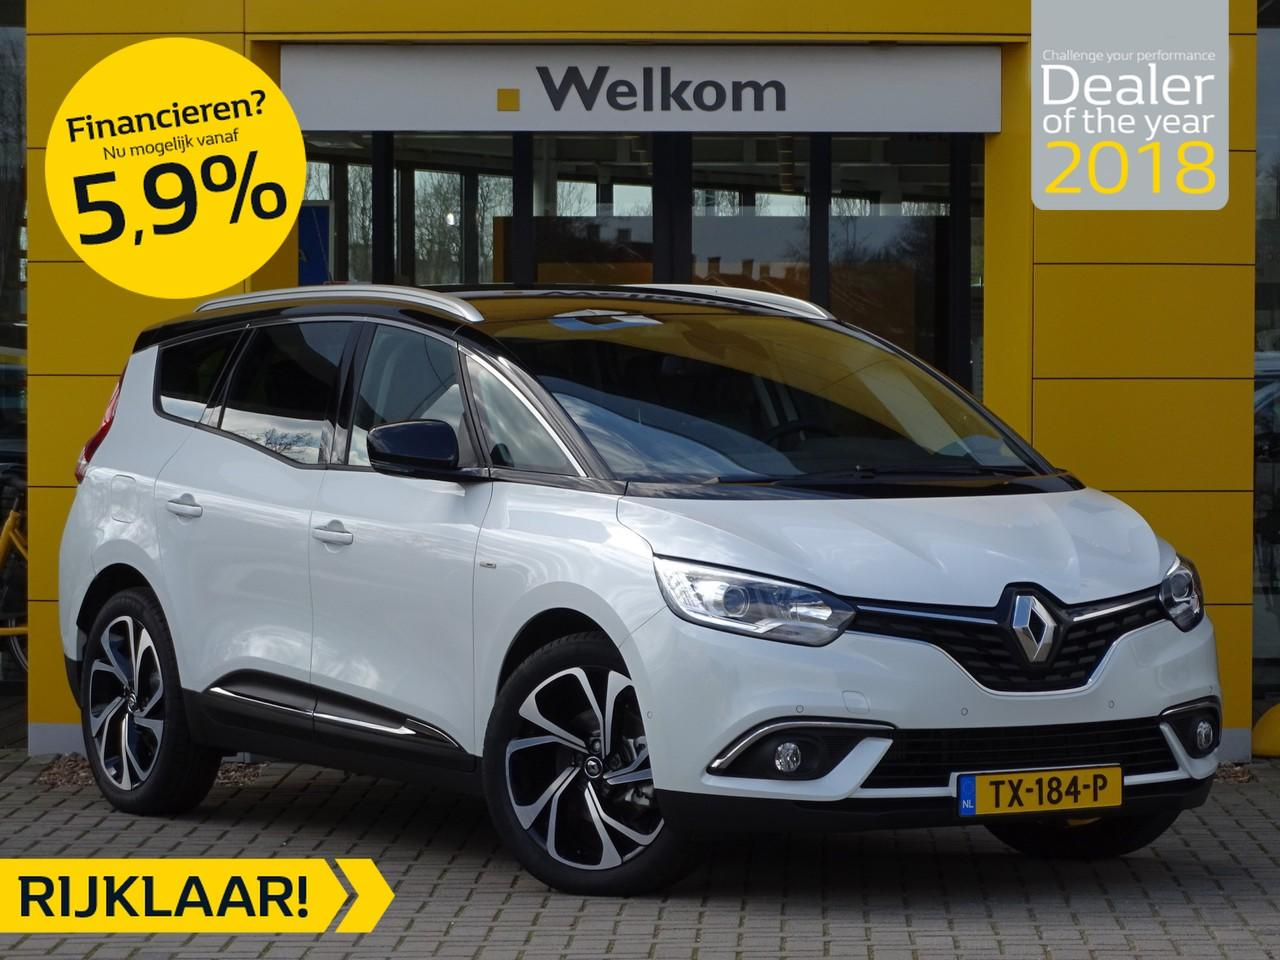 Renault Grand scénic 1.5 dci 110pk edc/aut.6 bose 7-persoons